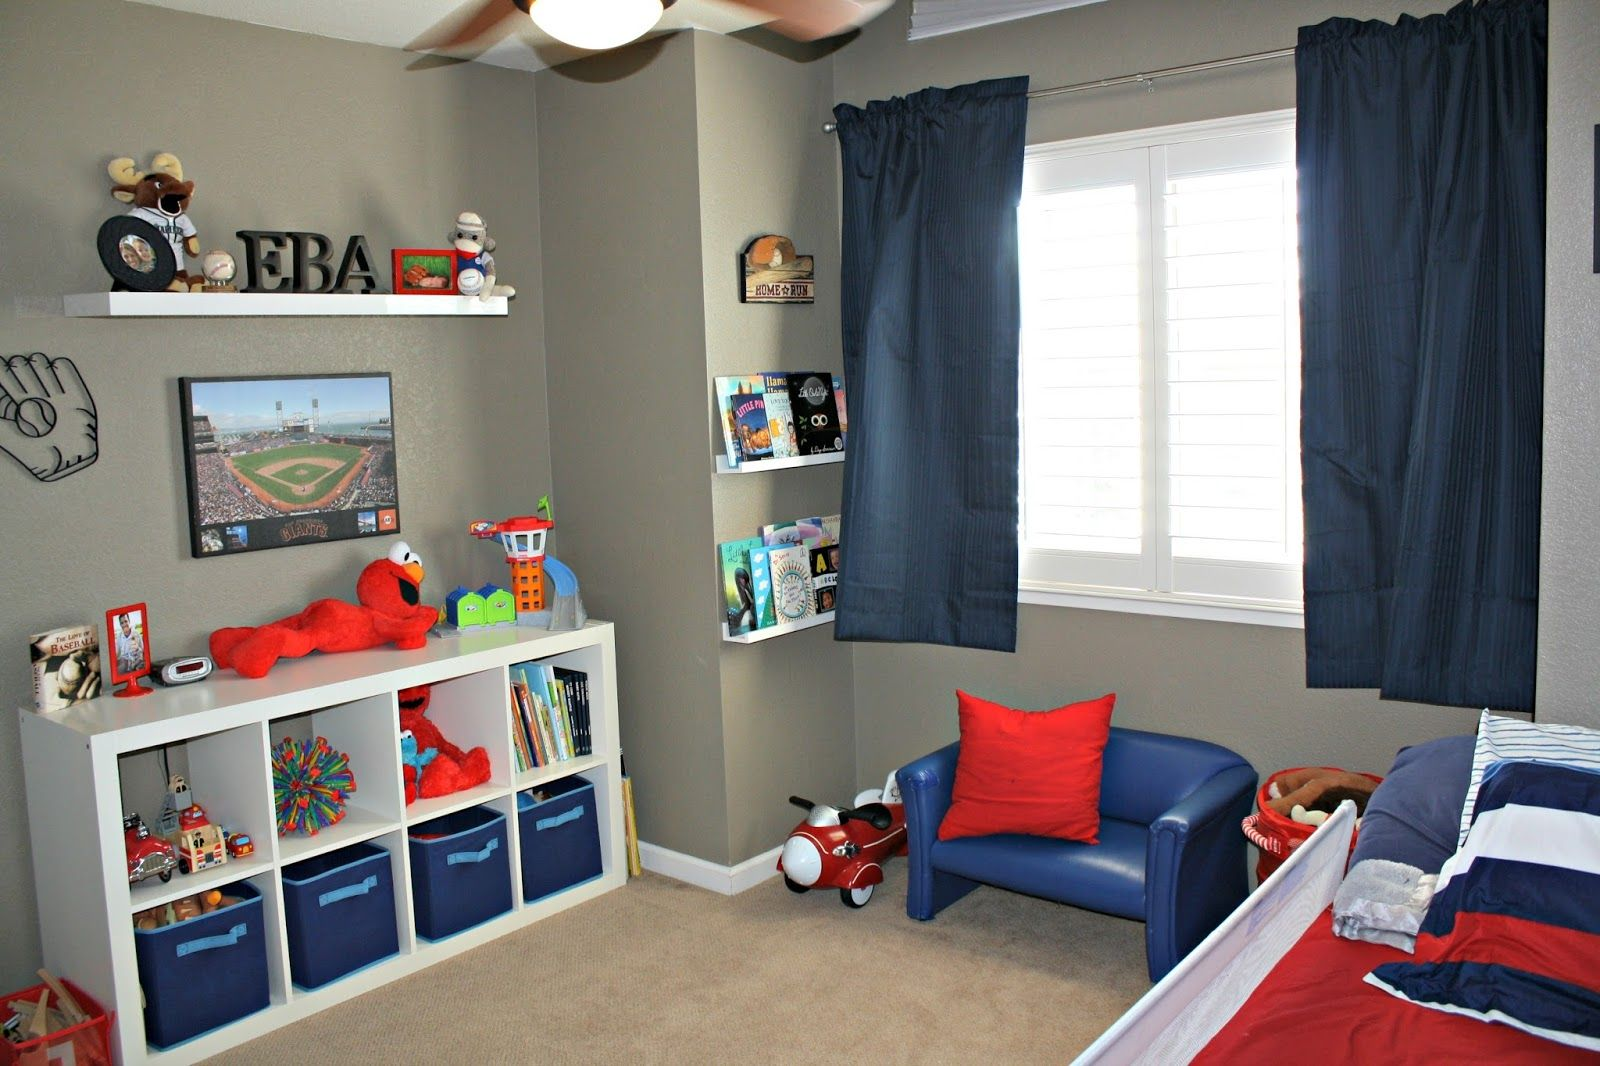 Surface Of How Awesome Lj S Room Would Be When He Decides Wants To Stop Sleeping In The Bed With Me Lol Decorating Ideas Modern Toddler Bedroom Boy